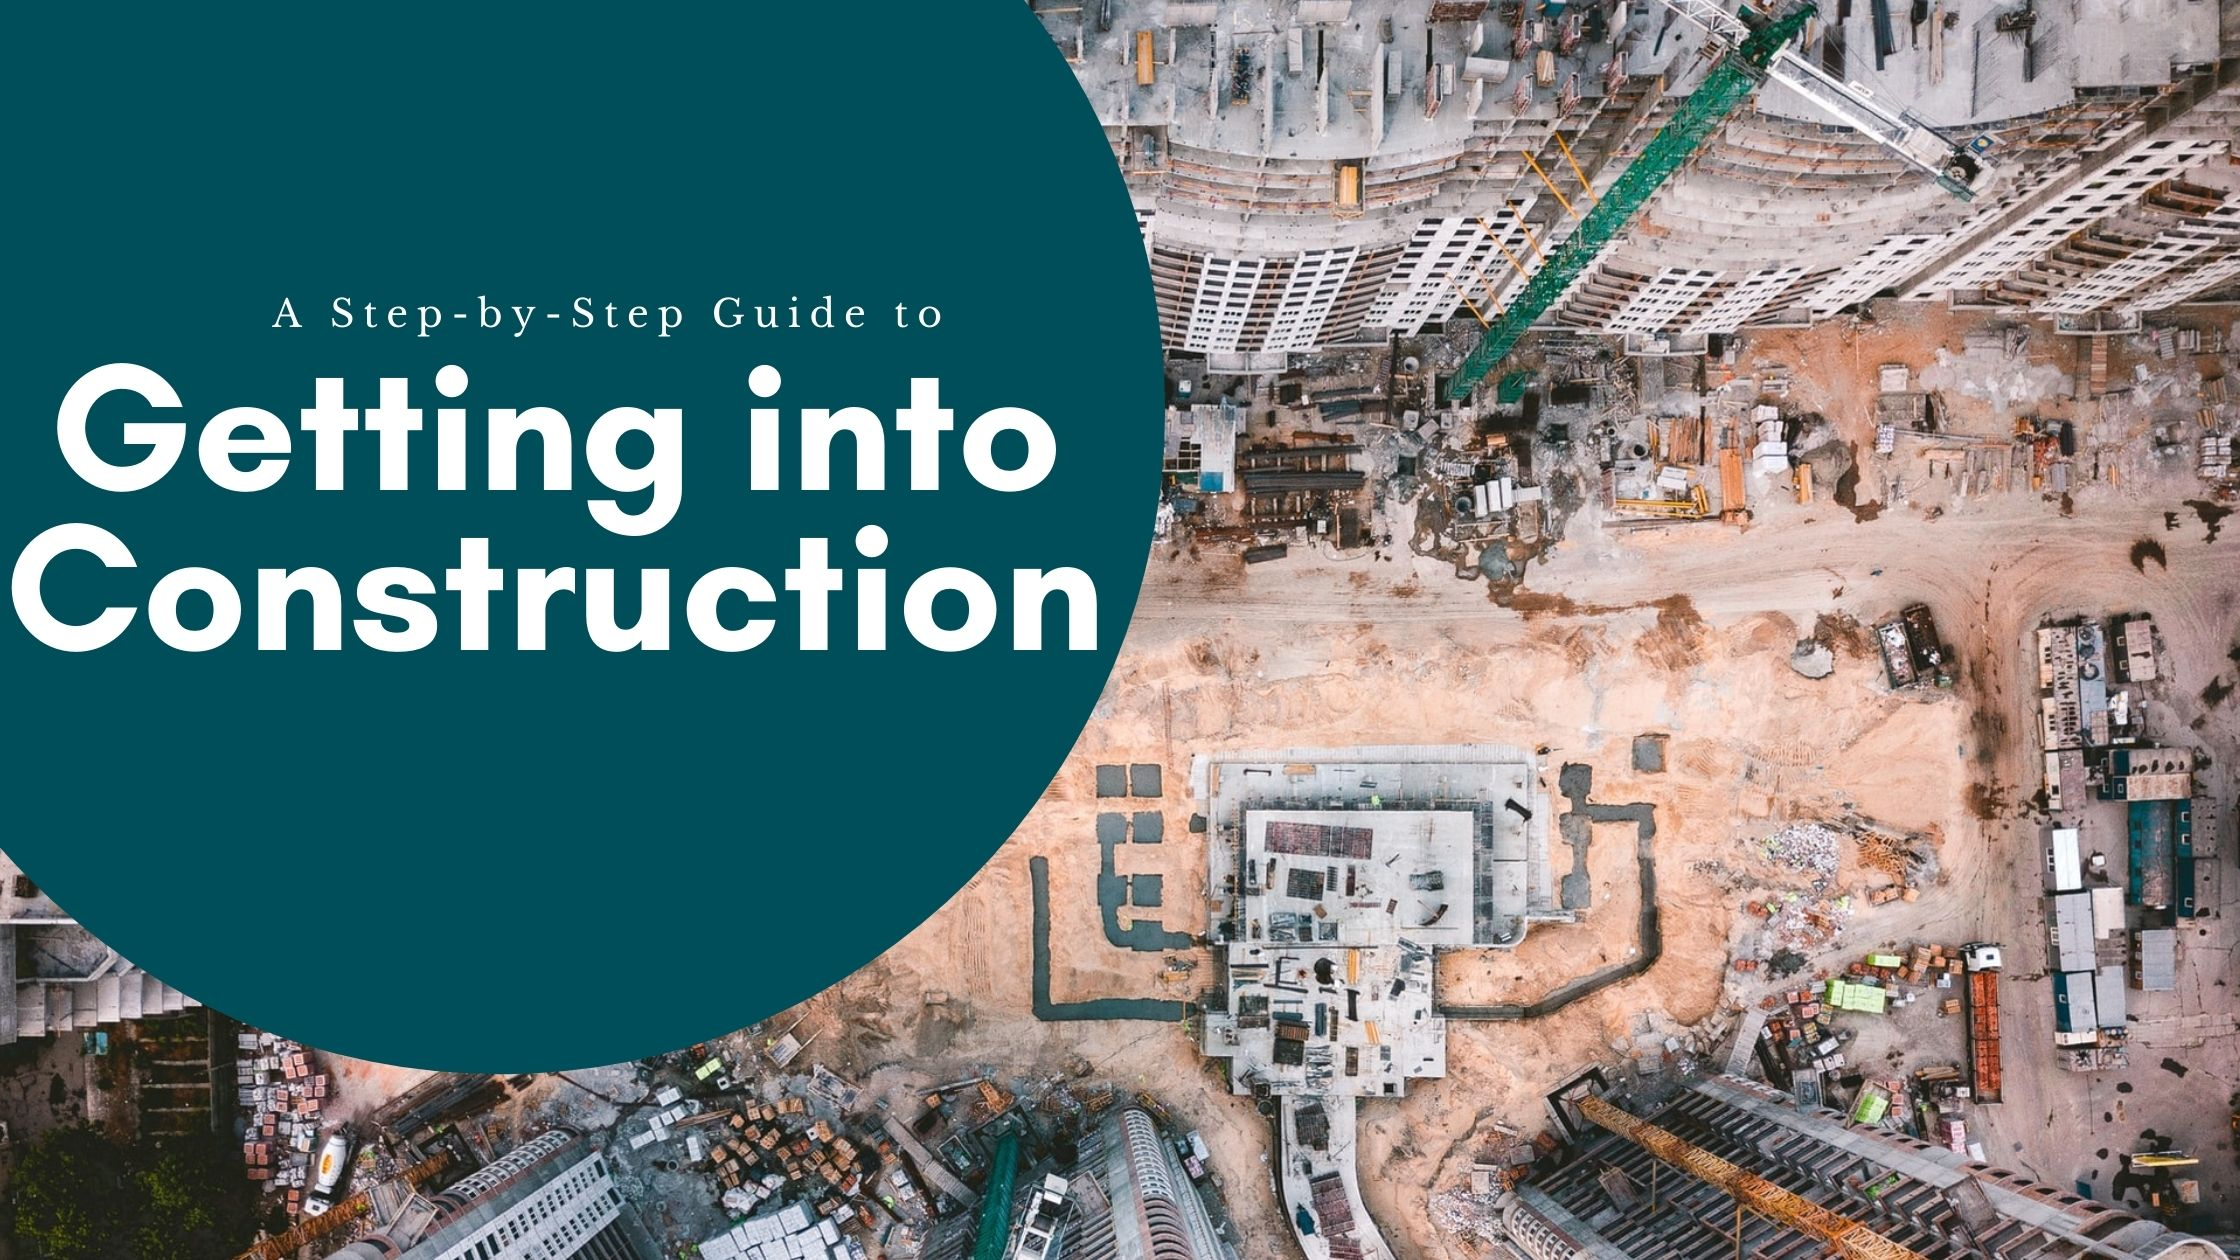 A Step-by-step Guide to getting into construction